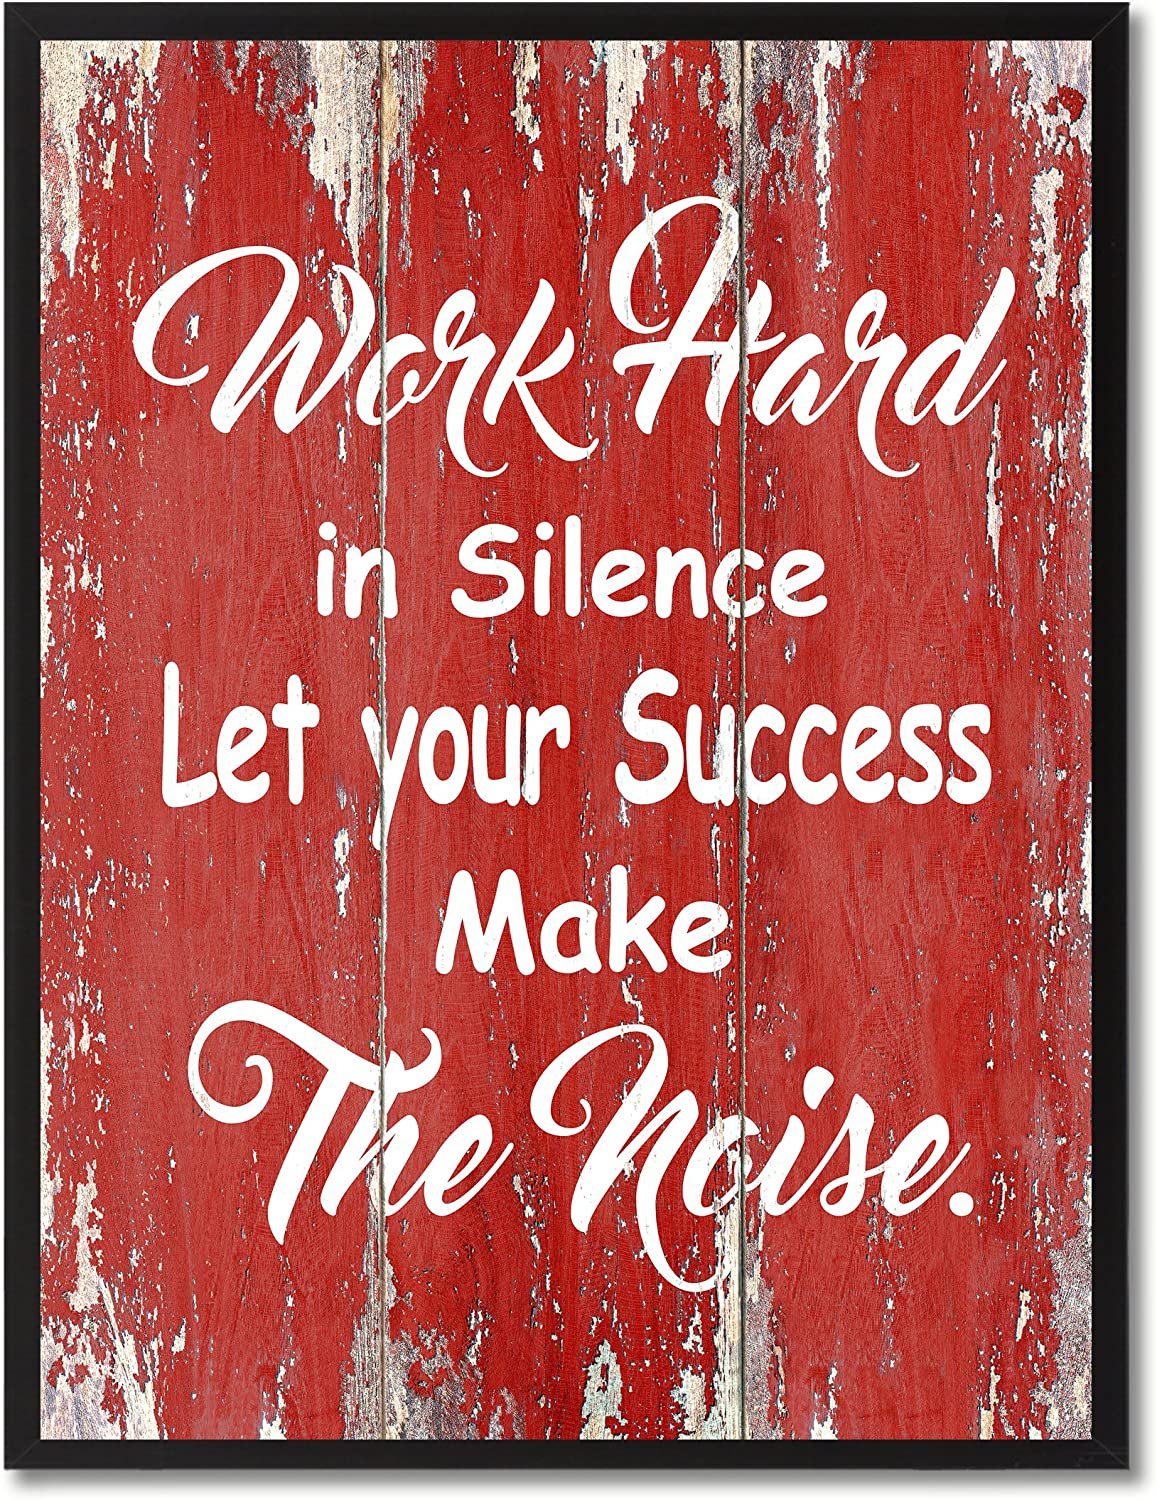 """SpotColorArt Work Hard in Silence Framed Canvas Art, 7"""" x 9"""", Red (Wood)"""